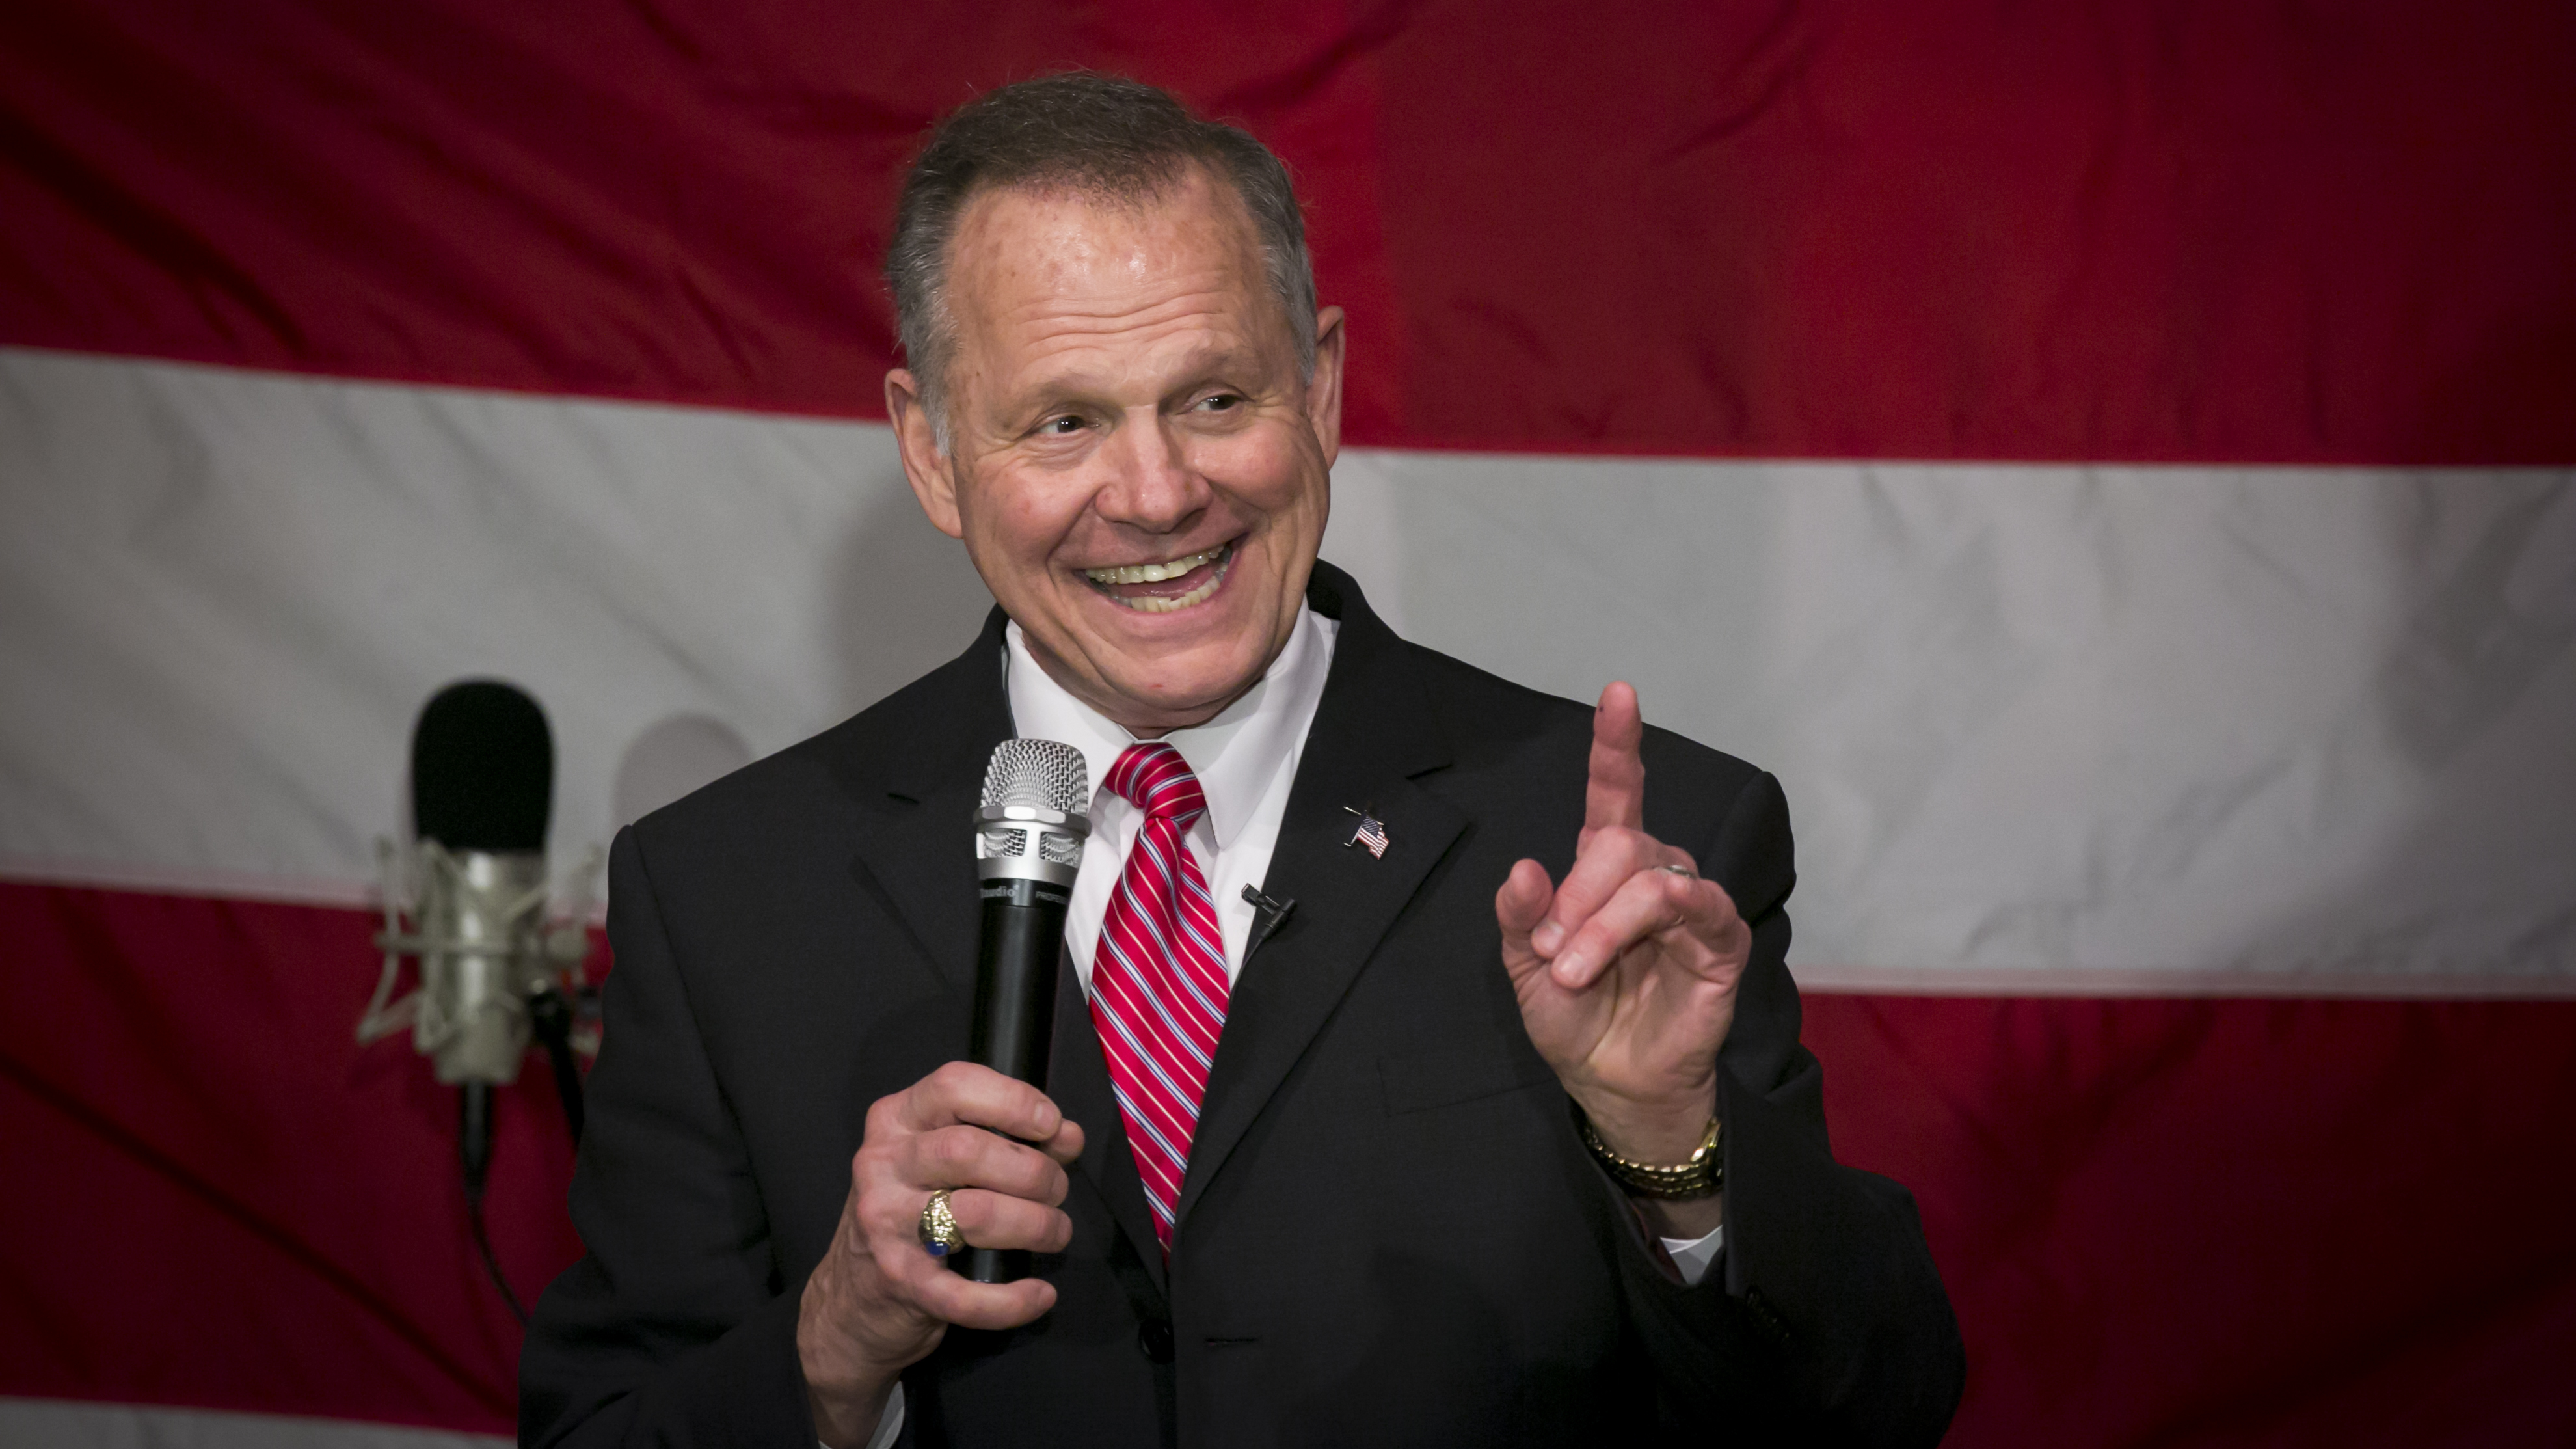 Republican Senate candidate Roy Moore has dismissed the allegations of sexual misconduct against him as politically motivated. (Nicole Craine/Bloomberg via Getty Images)